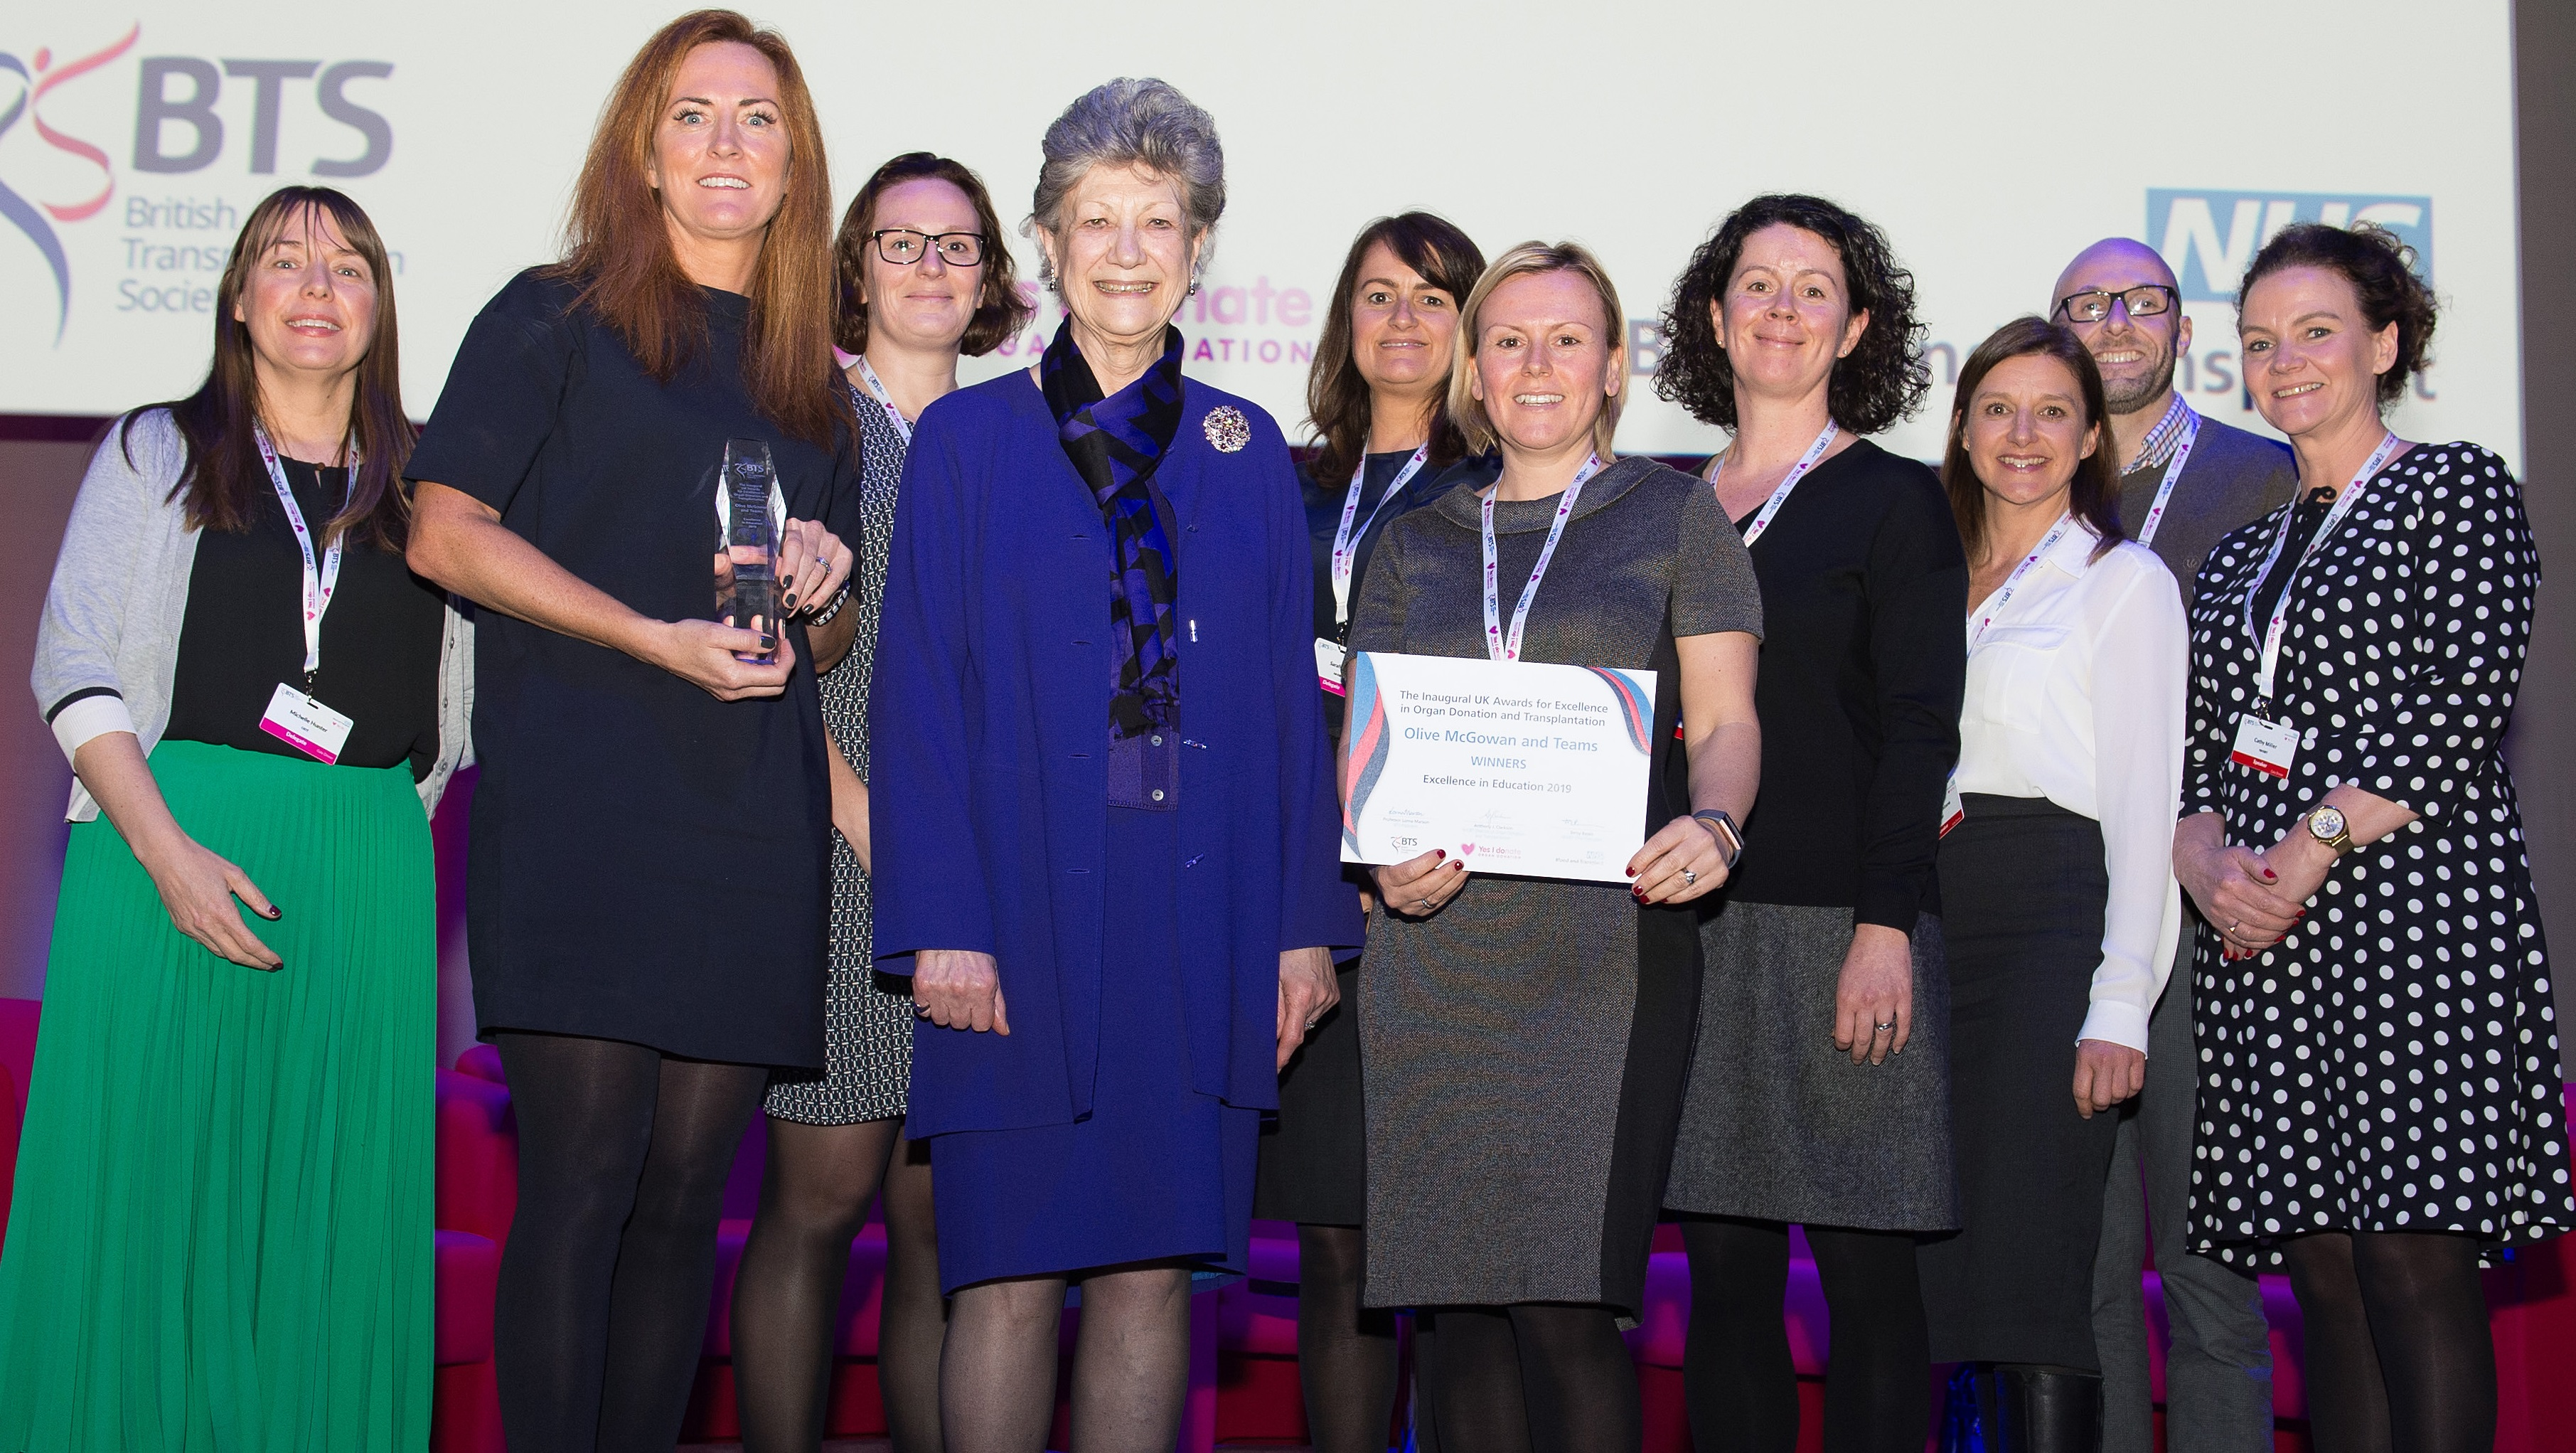 Olive McGowan and her team at NHS Blood and Transplant receiving the Excellence in Education award